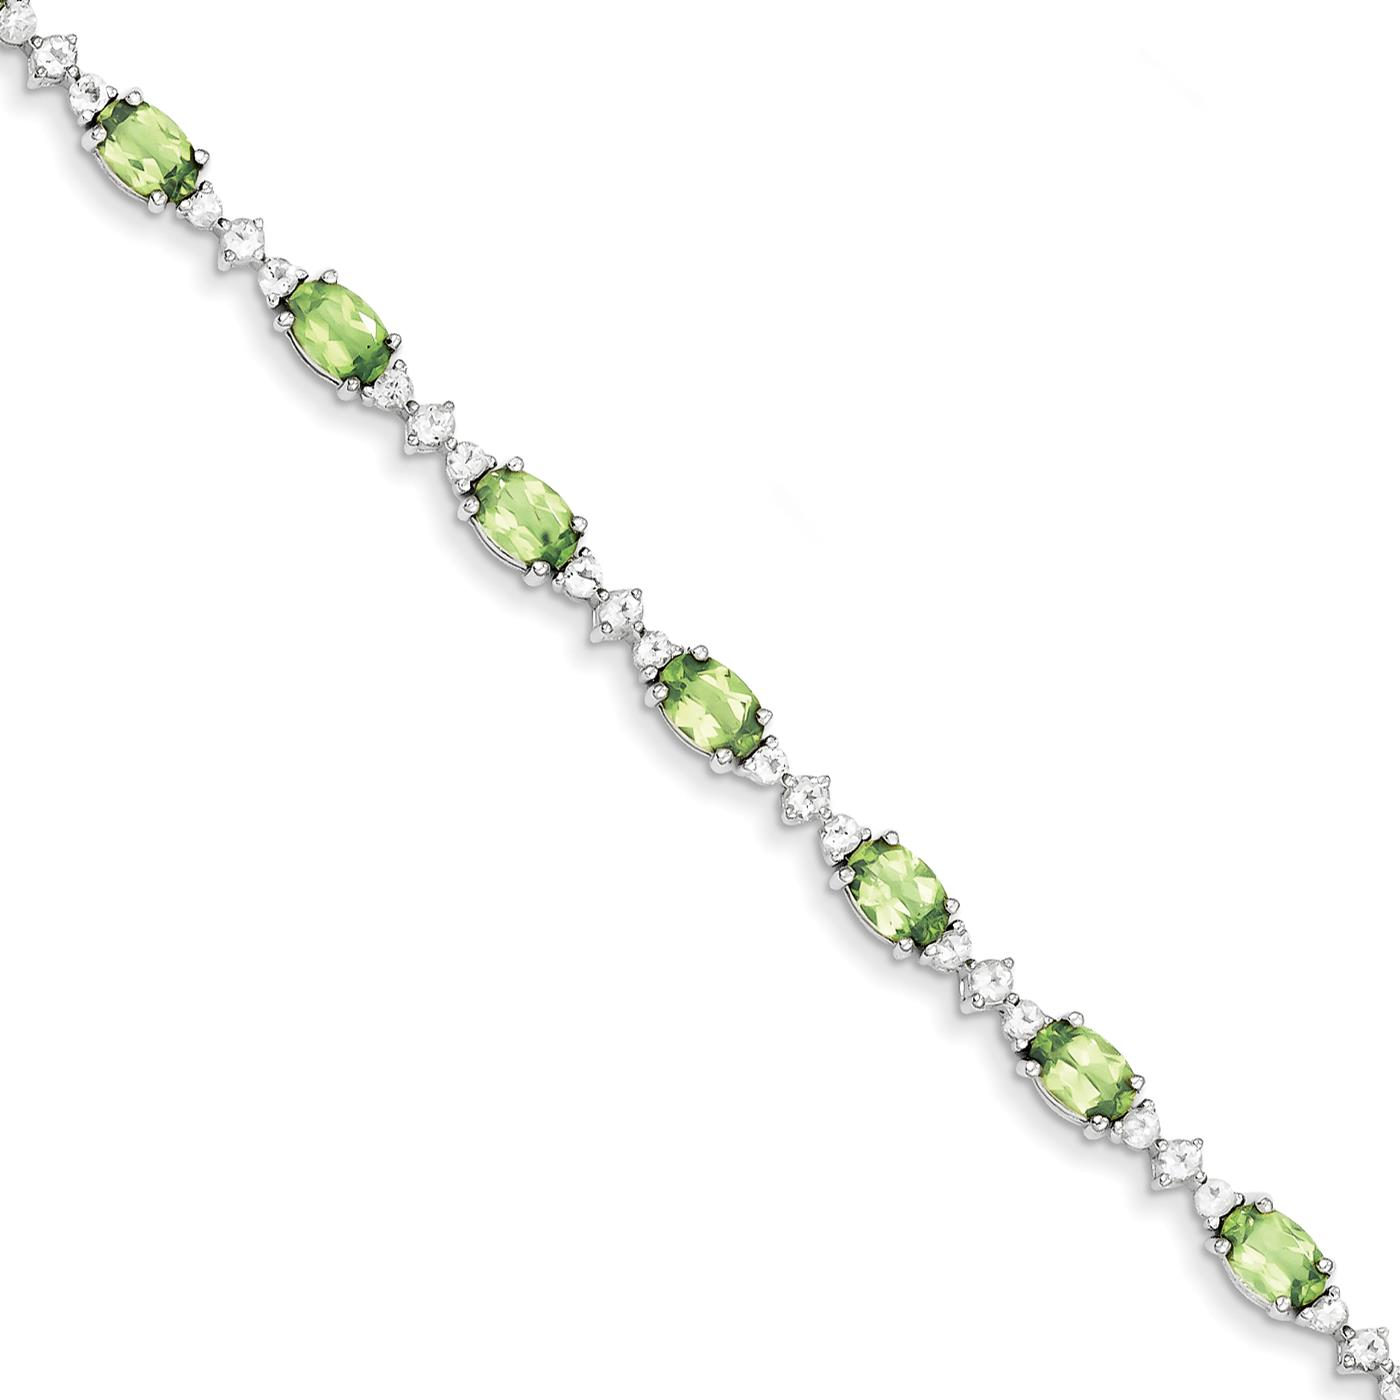 "Ladies and Womens 925 Sterling Silver 4mm Peridot White Topaz Bracelet 7"" by Fusion Collections"